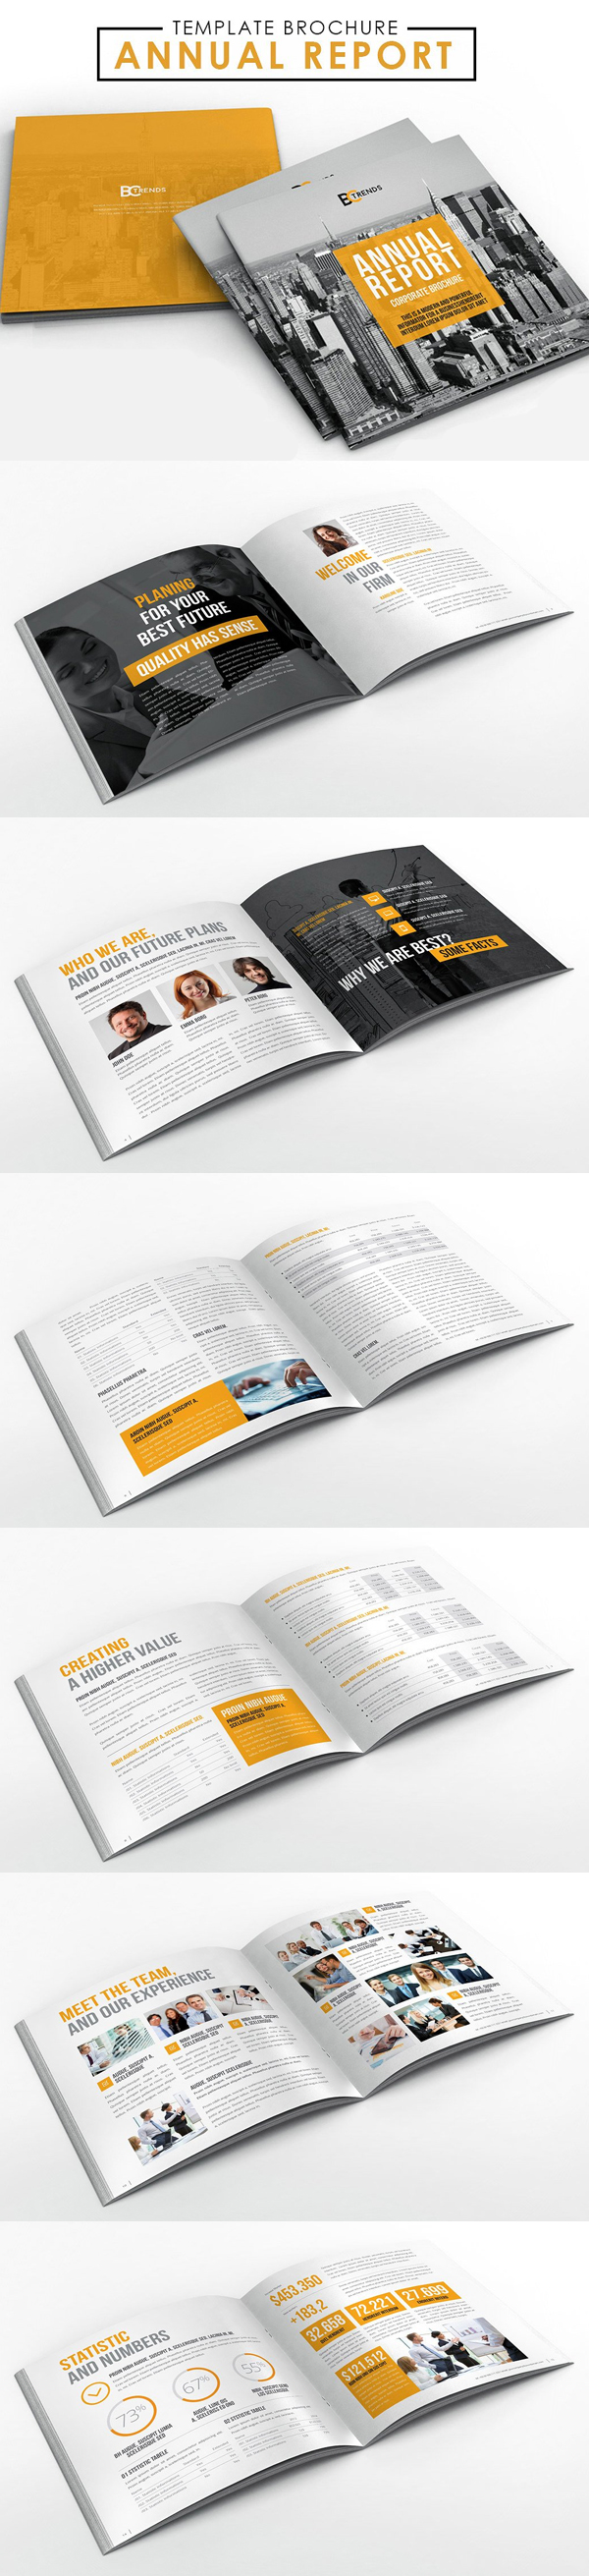 2017 Annual Report Brochure Template